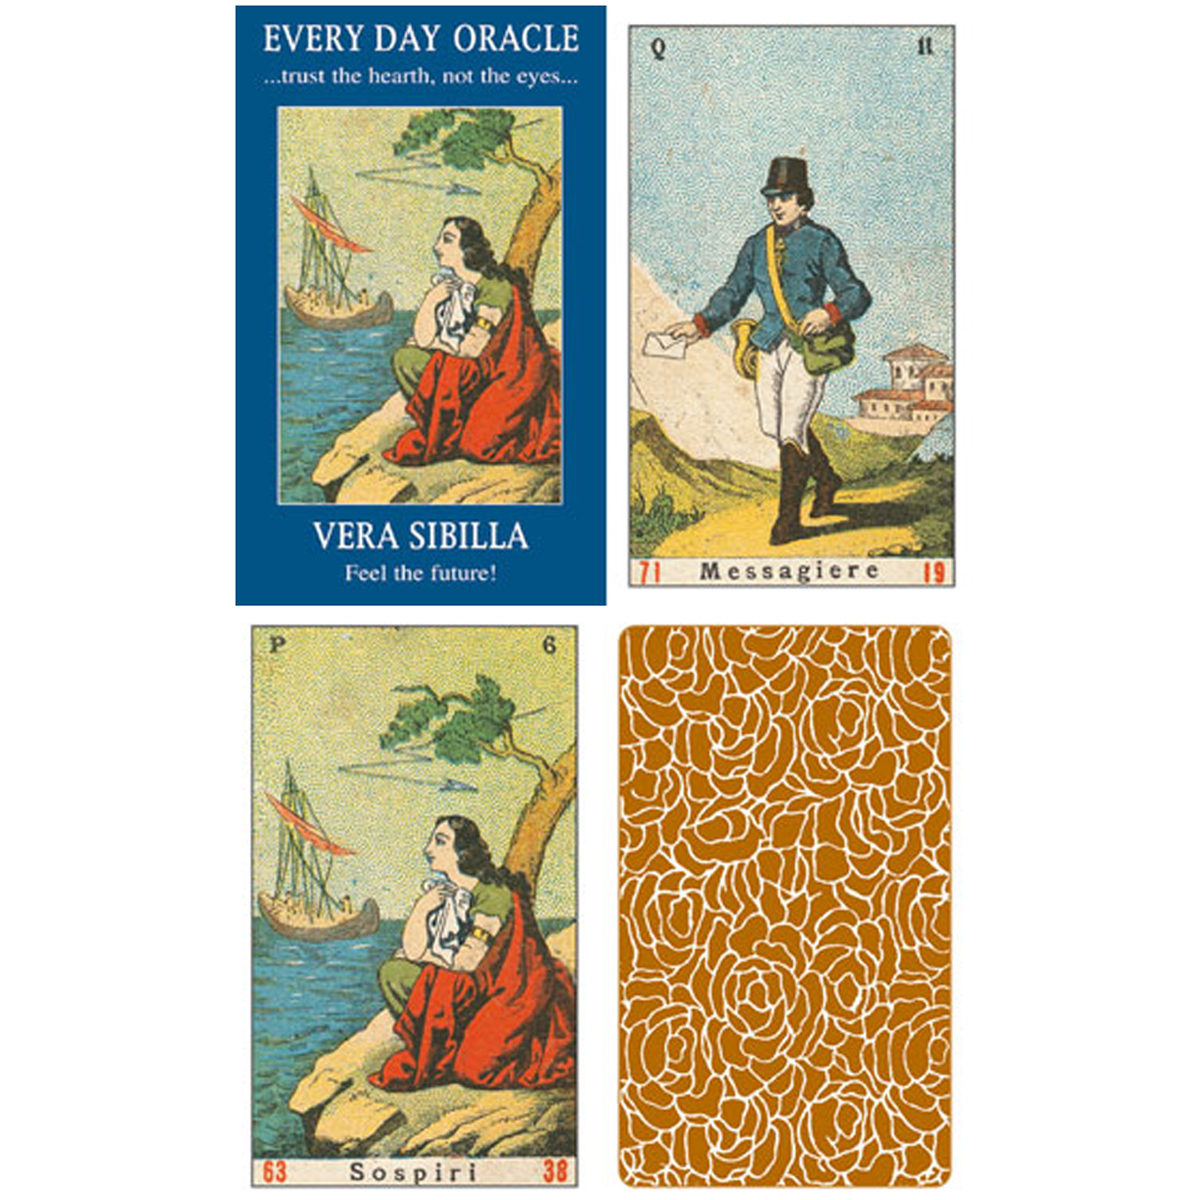 Cartes Oracles \'Every Day Oracle\' - 10x6x2 cm - [A1205]